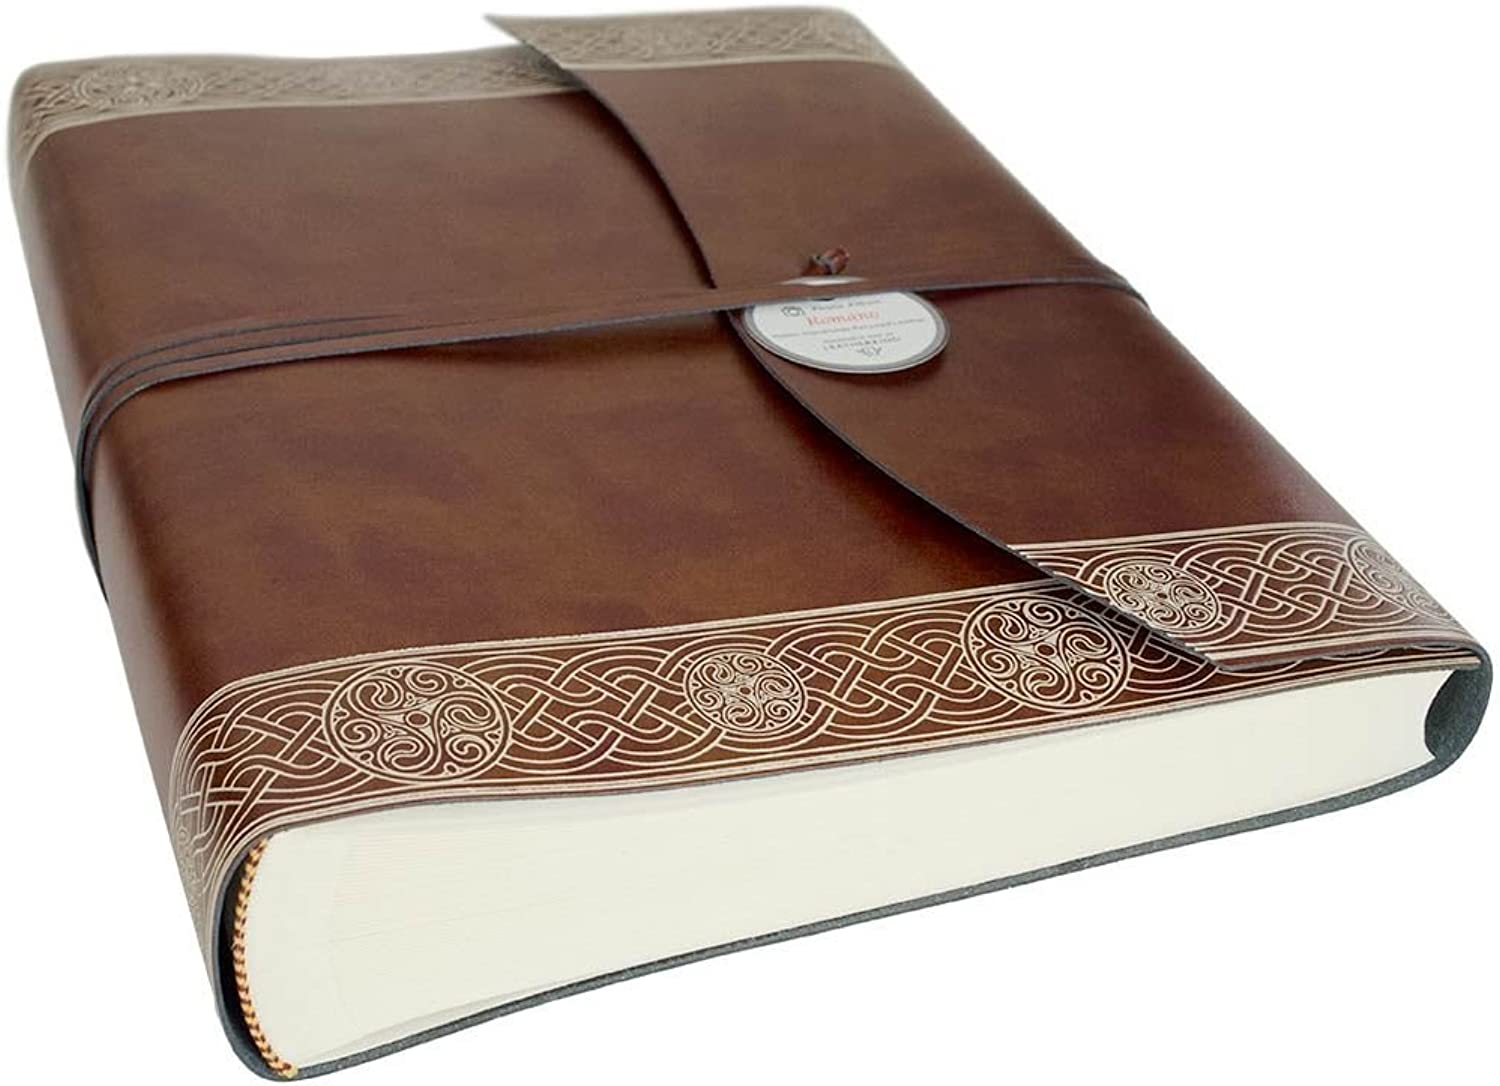 LEATHERKIND Olympia Recycled Leather Photo Album, Large Celtic Brown - Handmade in